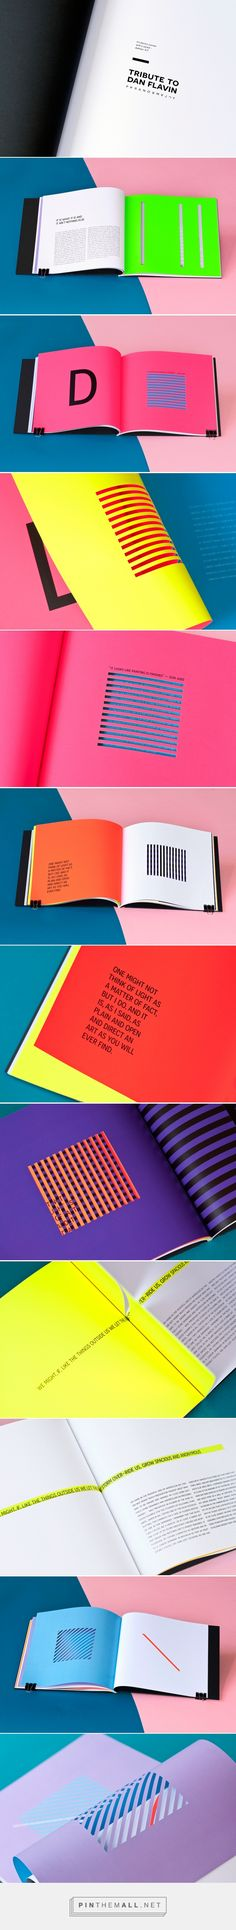 Tribute to Dan Flavin | paranormally on Behance - created via https://pinthemall.net